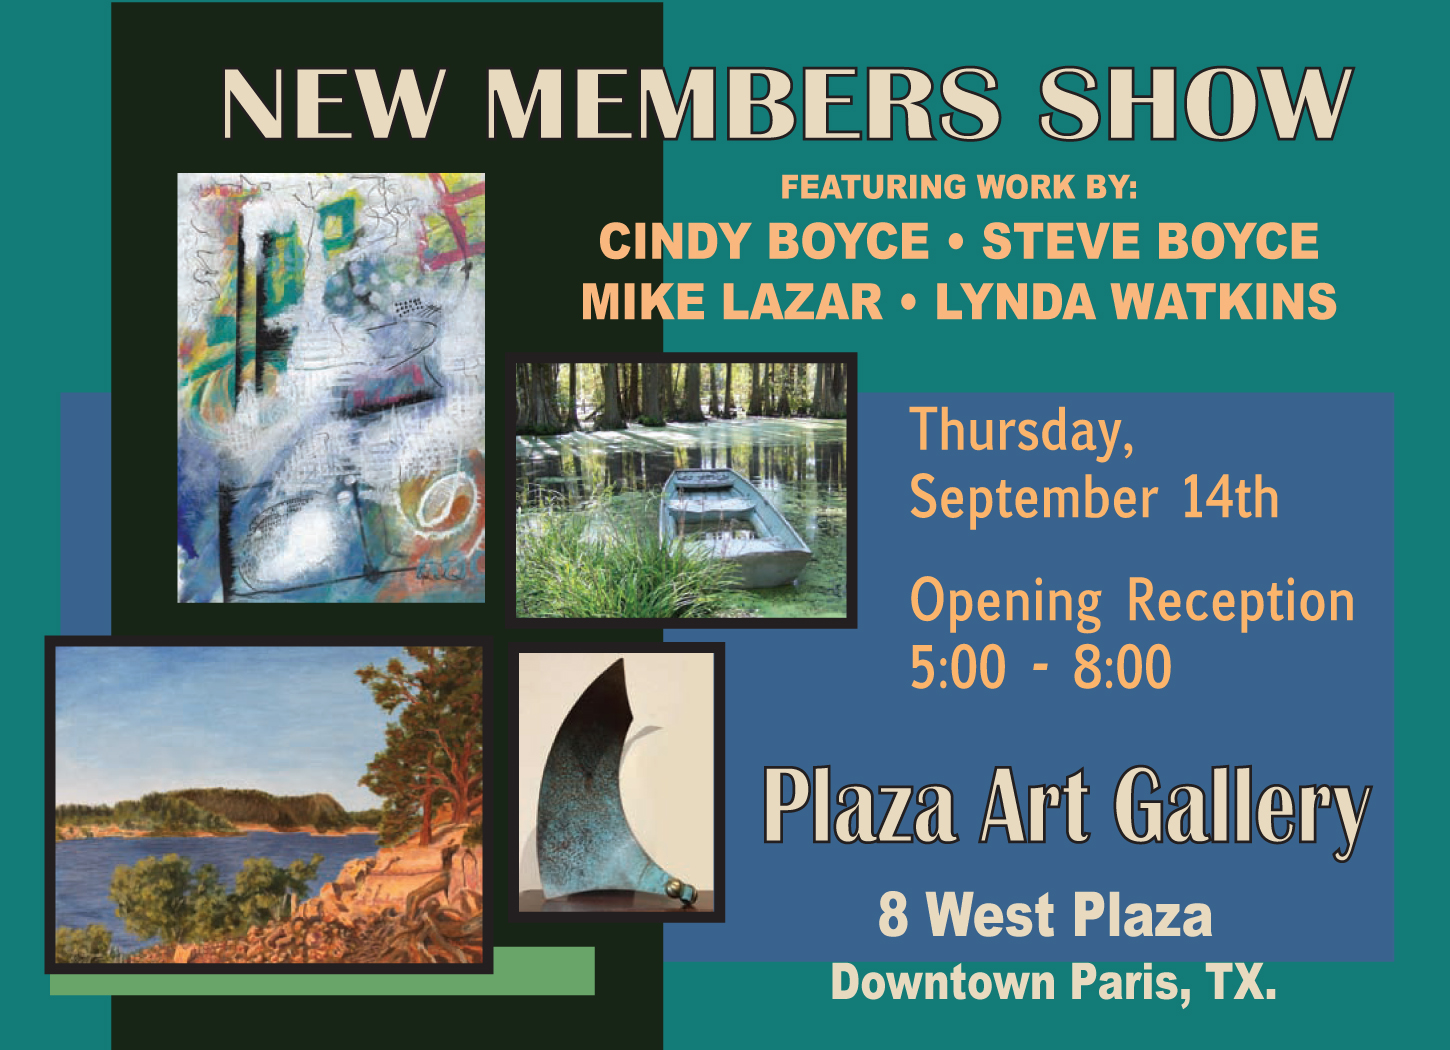 plaza art gallery new members show event navigation